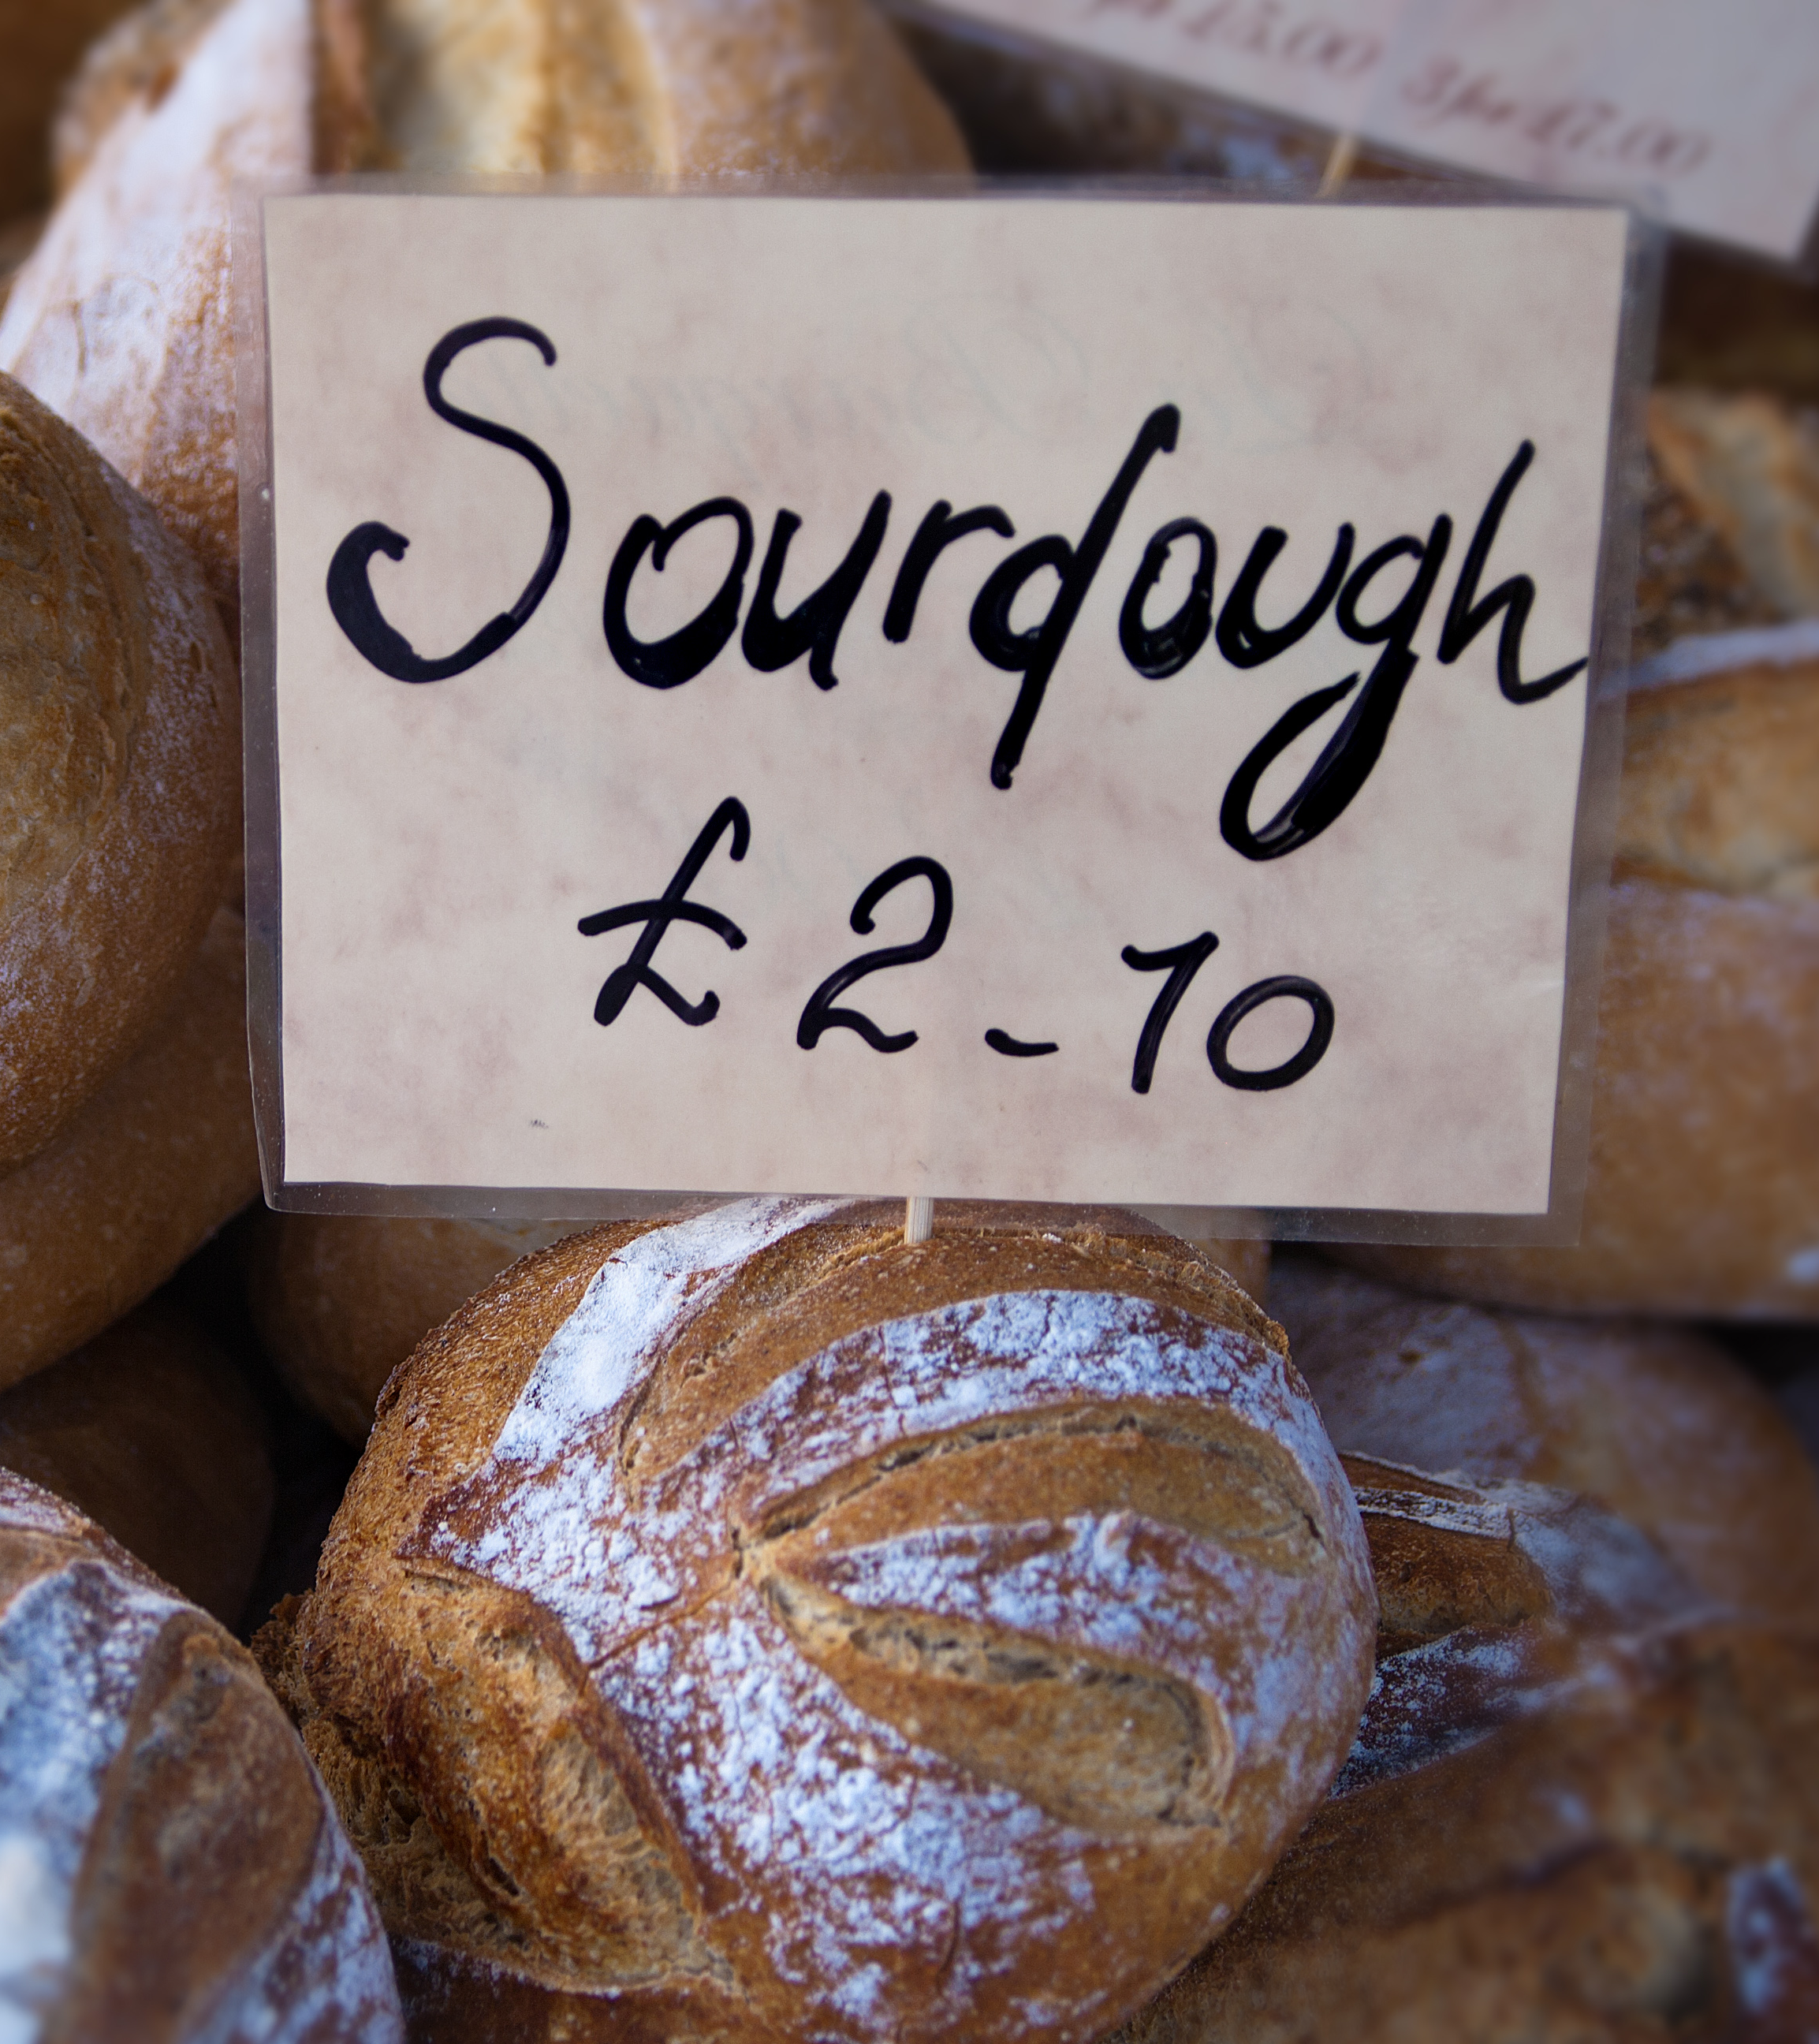 Image of a Sourdough label. Hand written on mottled, plastic coated paper, mounted on a stick and stuck into a sourdough loaf that is part of a display of sourdough loafs.